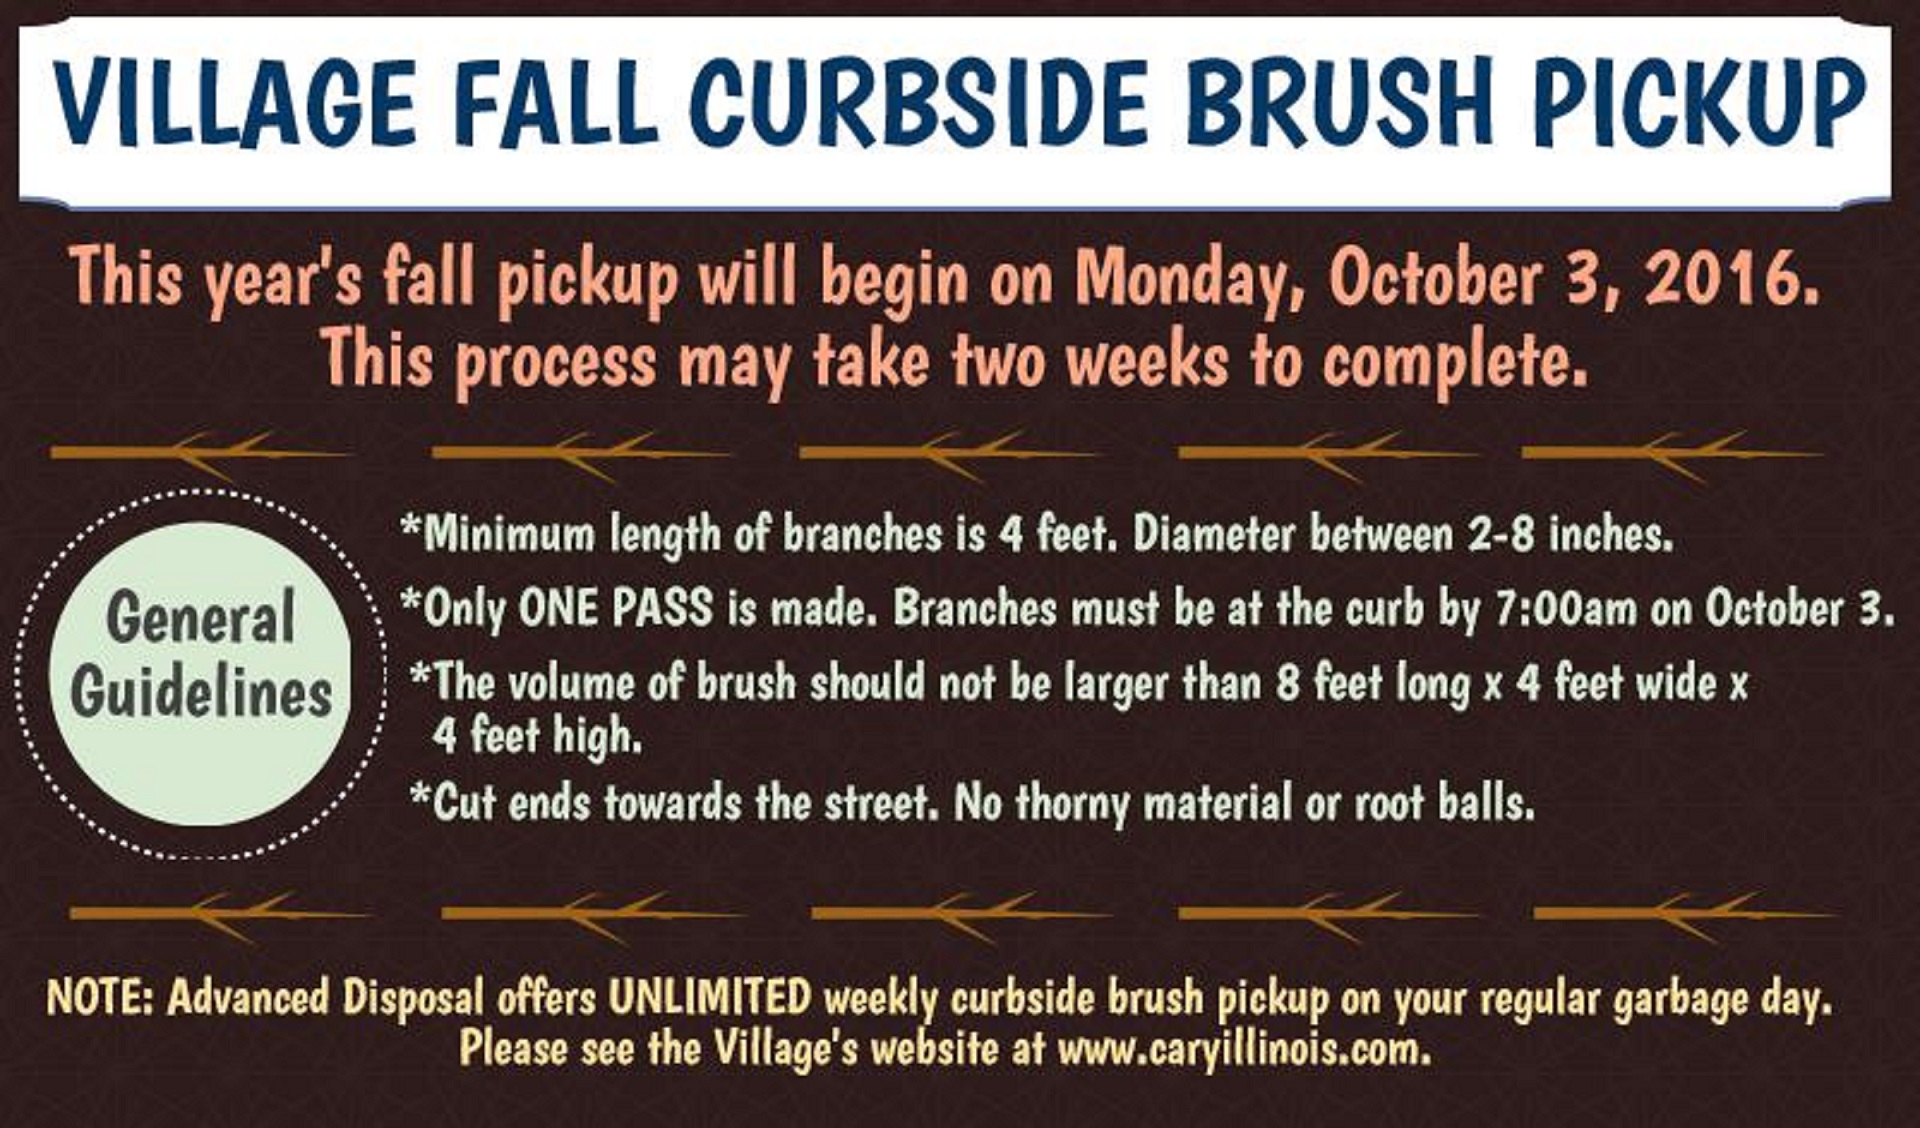 2016 Fall Curbside Brush Pickup